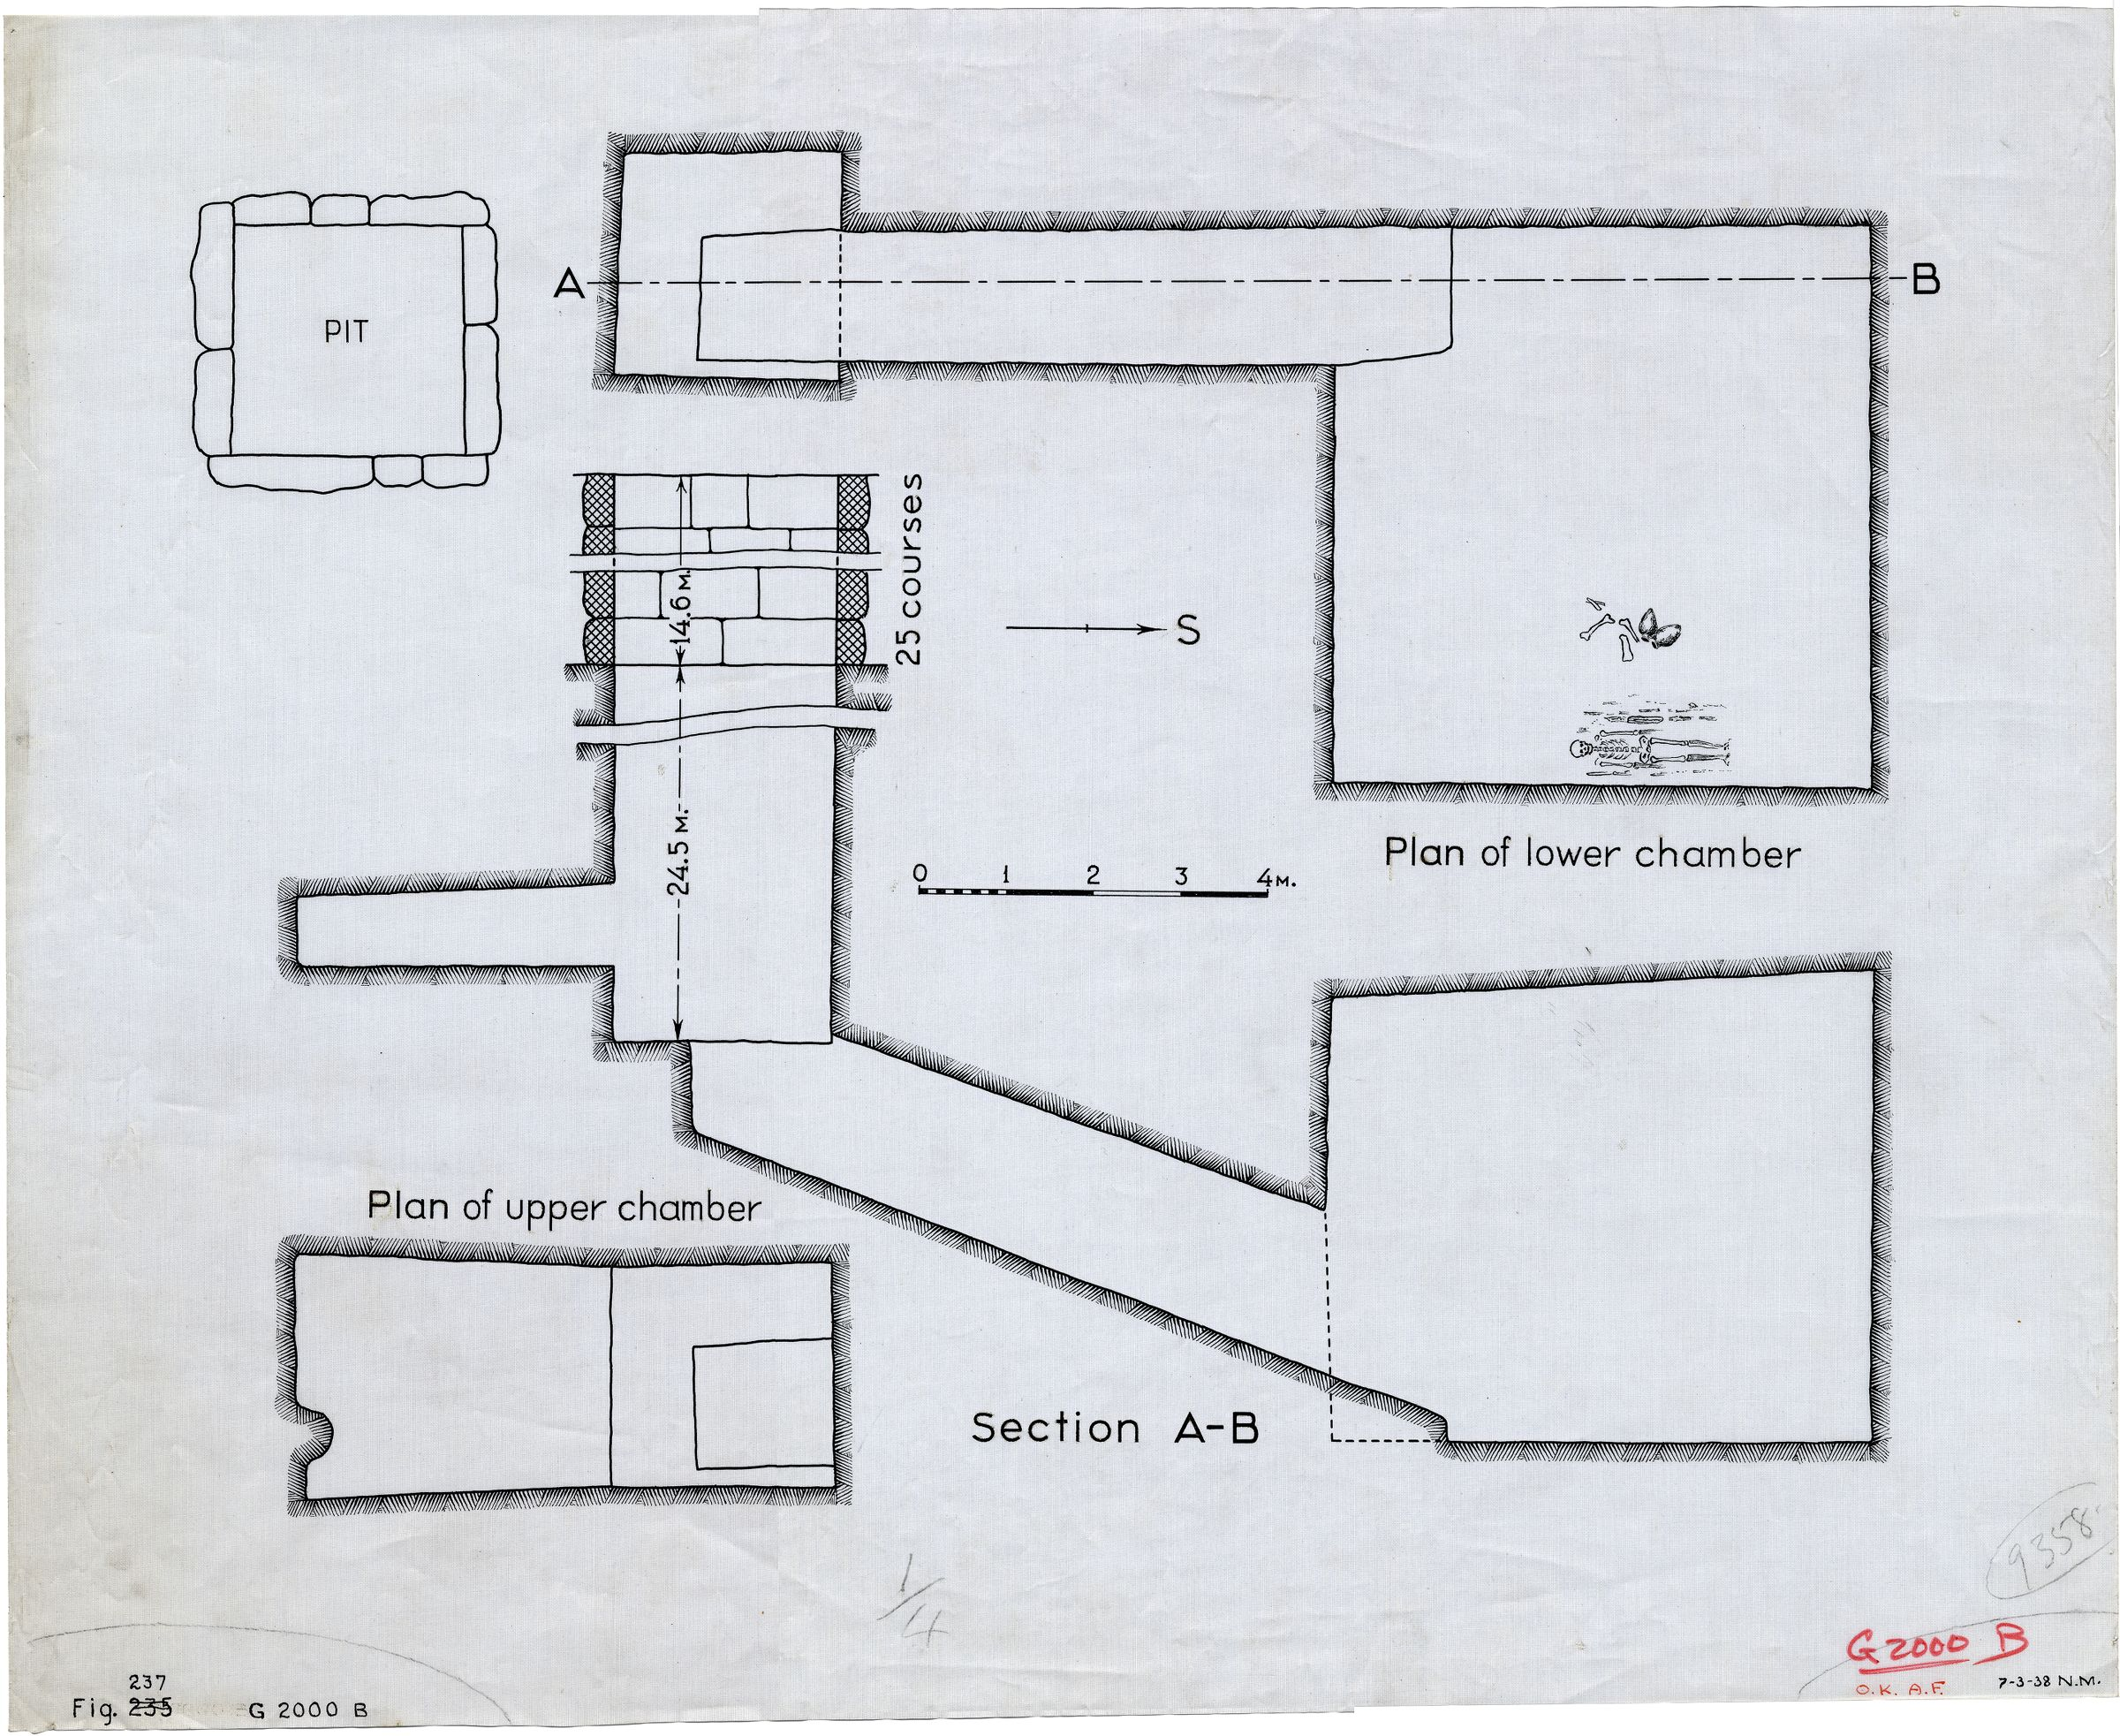 Maps and plans: G 2000 B, Plan and section